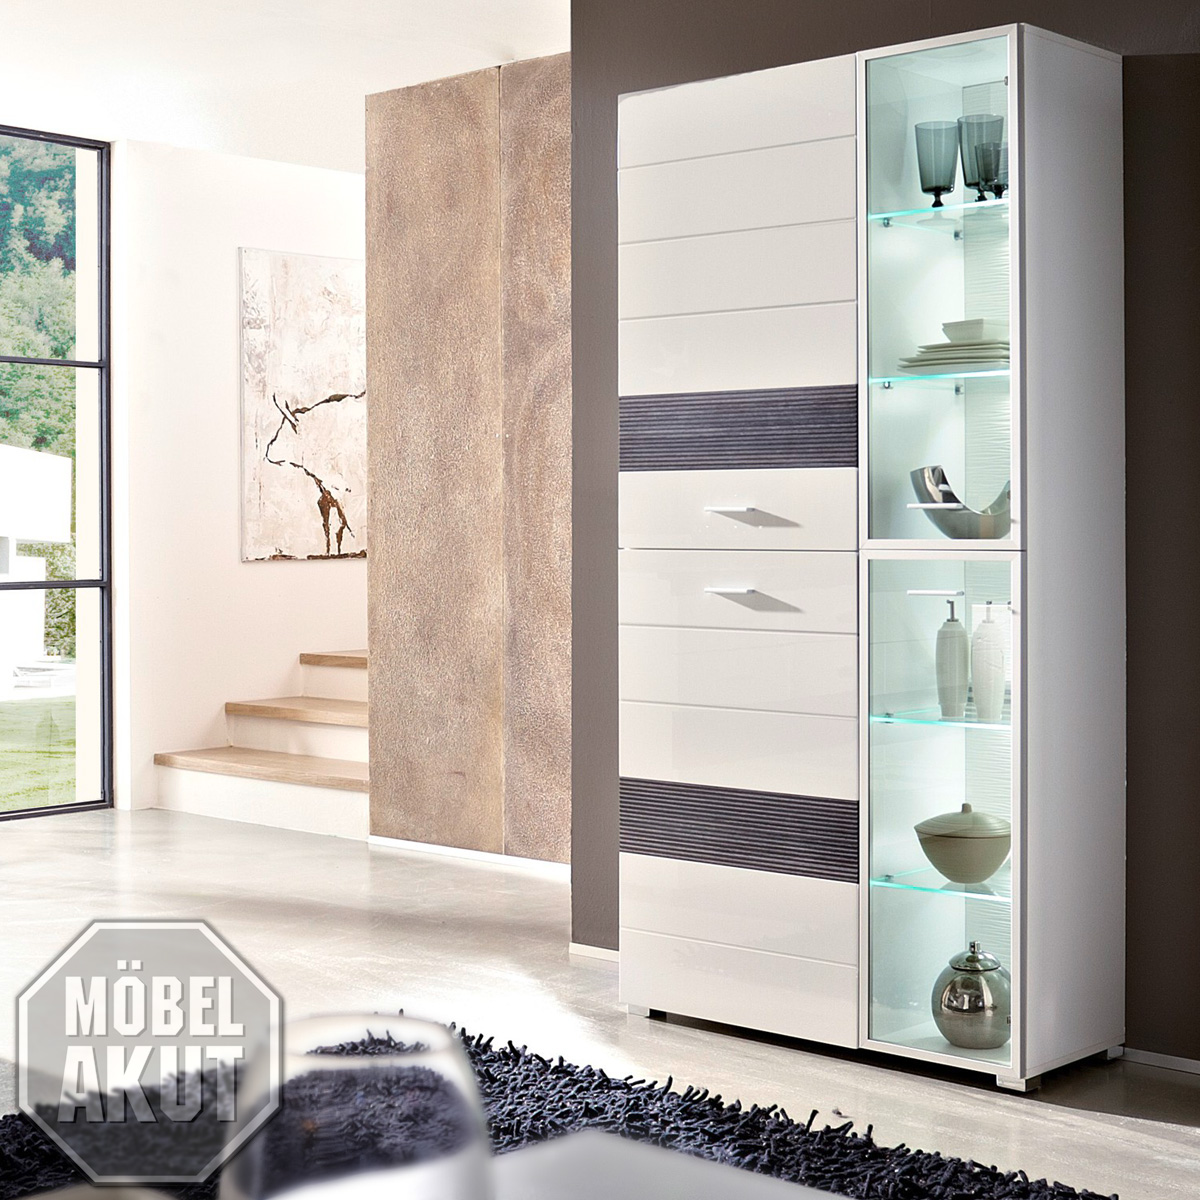 vitrine orion schrank wei hochglanz wei geriffelt inkl led neu. Black Bedroom Furniture Sets. Home Design Ideas